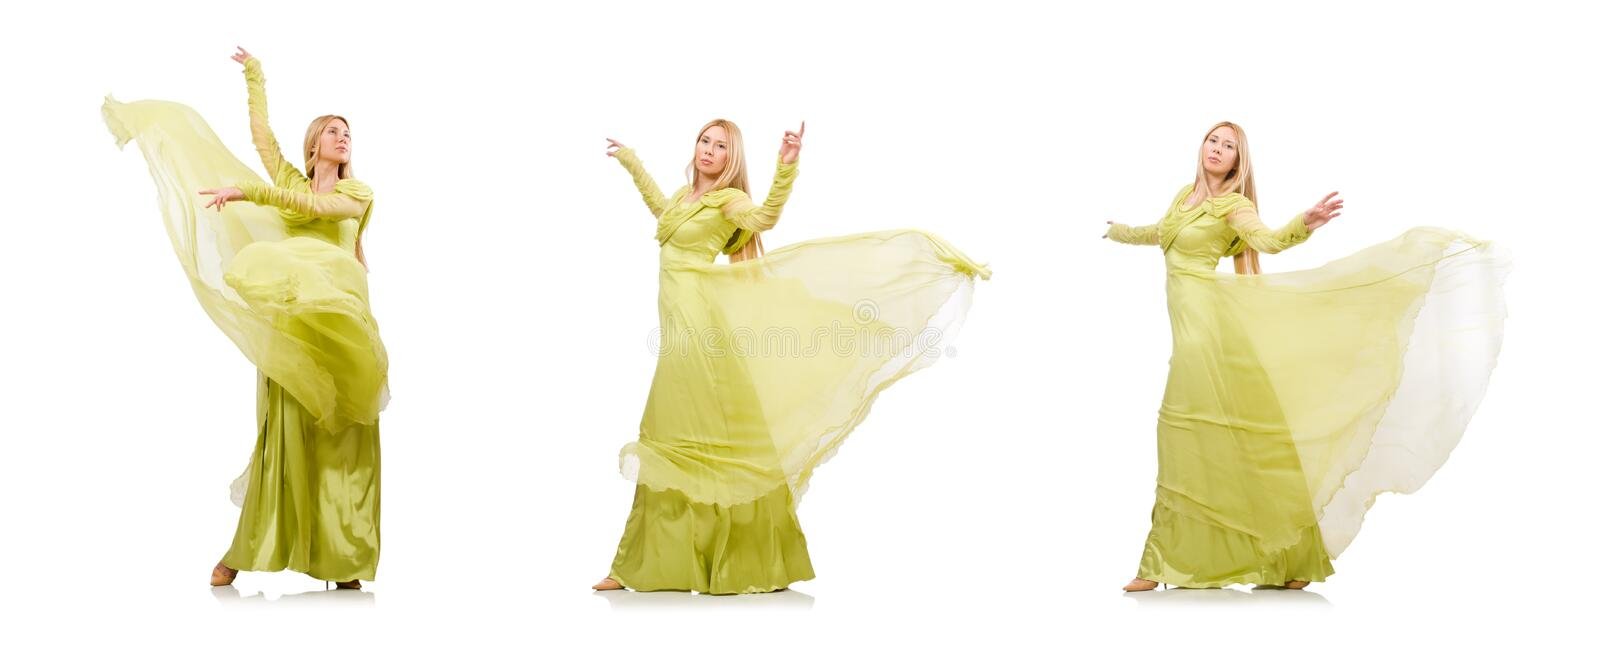 Young woman in elegant long green dress isolated on white royalty free stock image